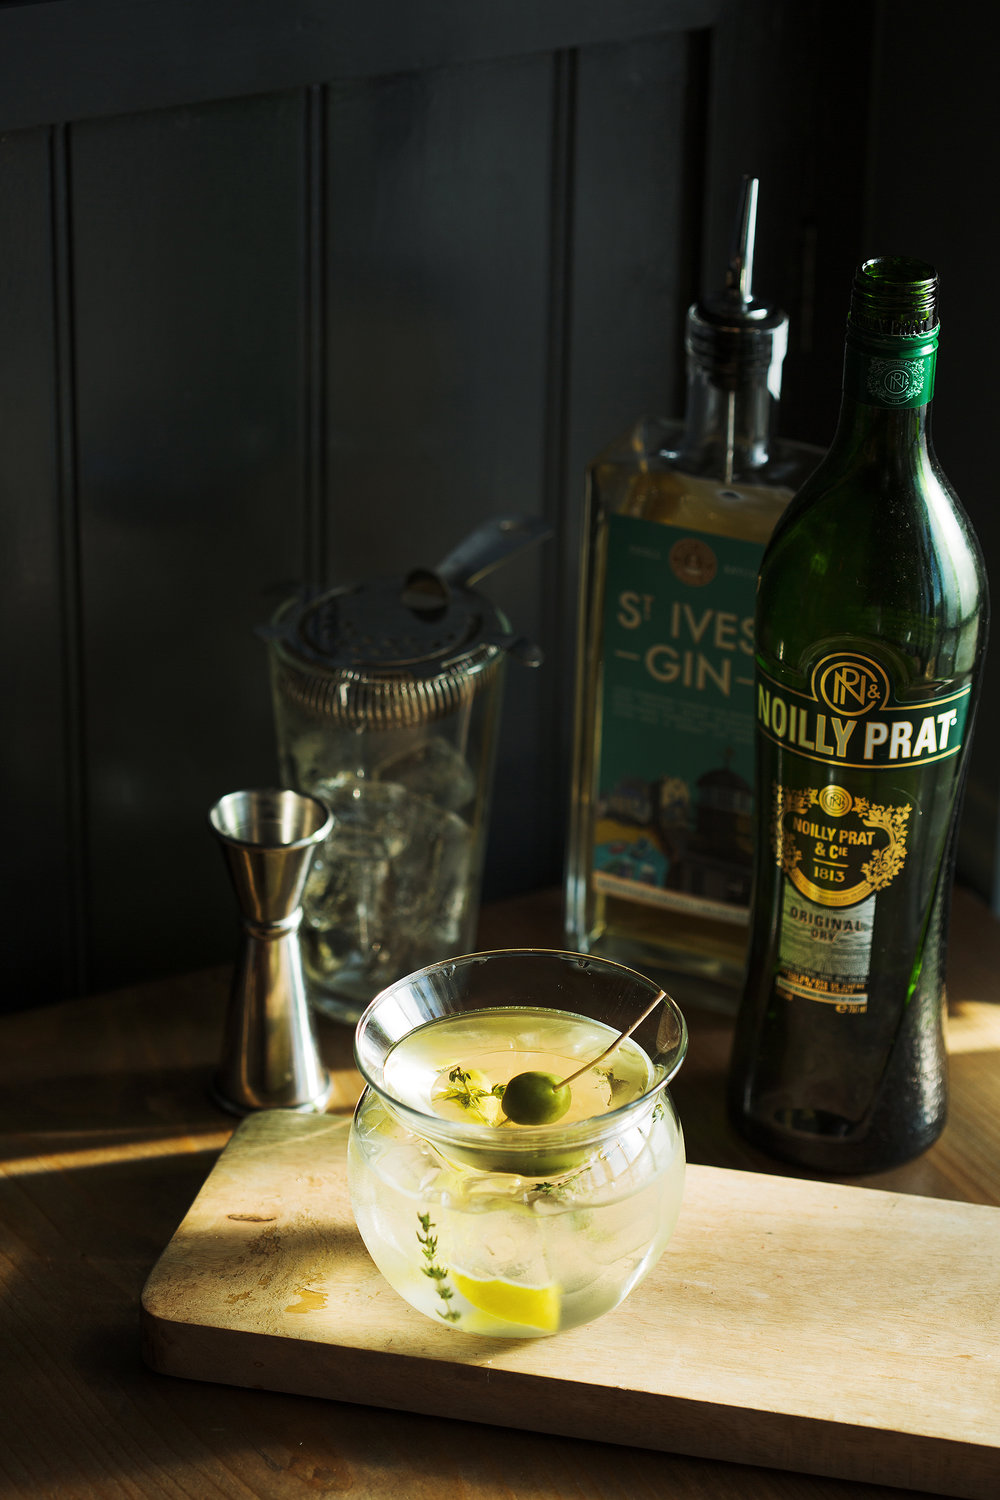 ST IVES GIN MARTINI -